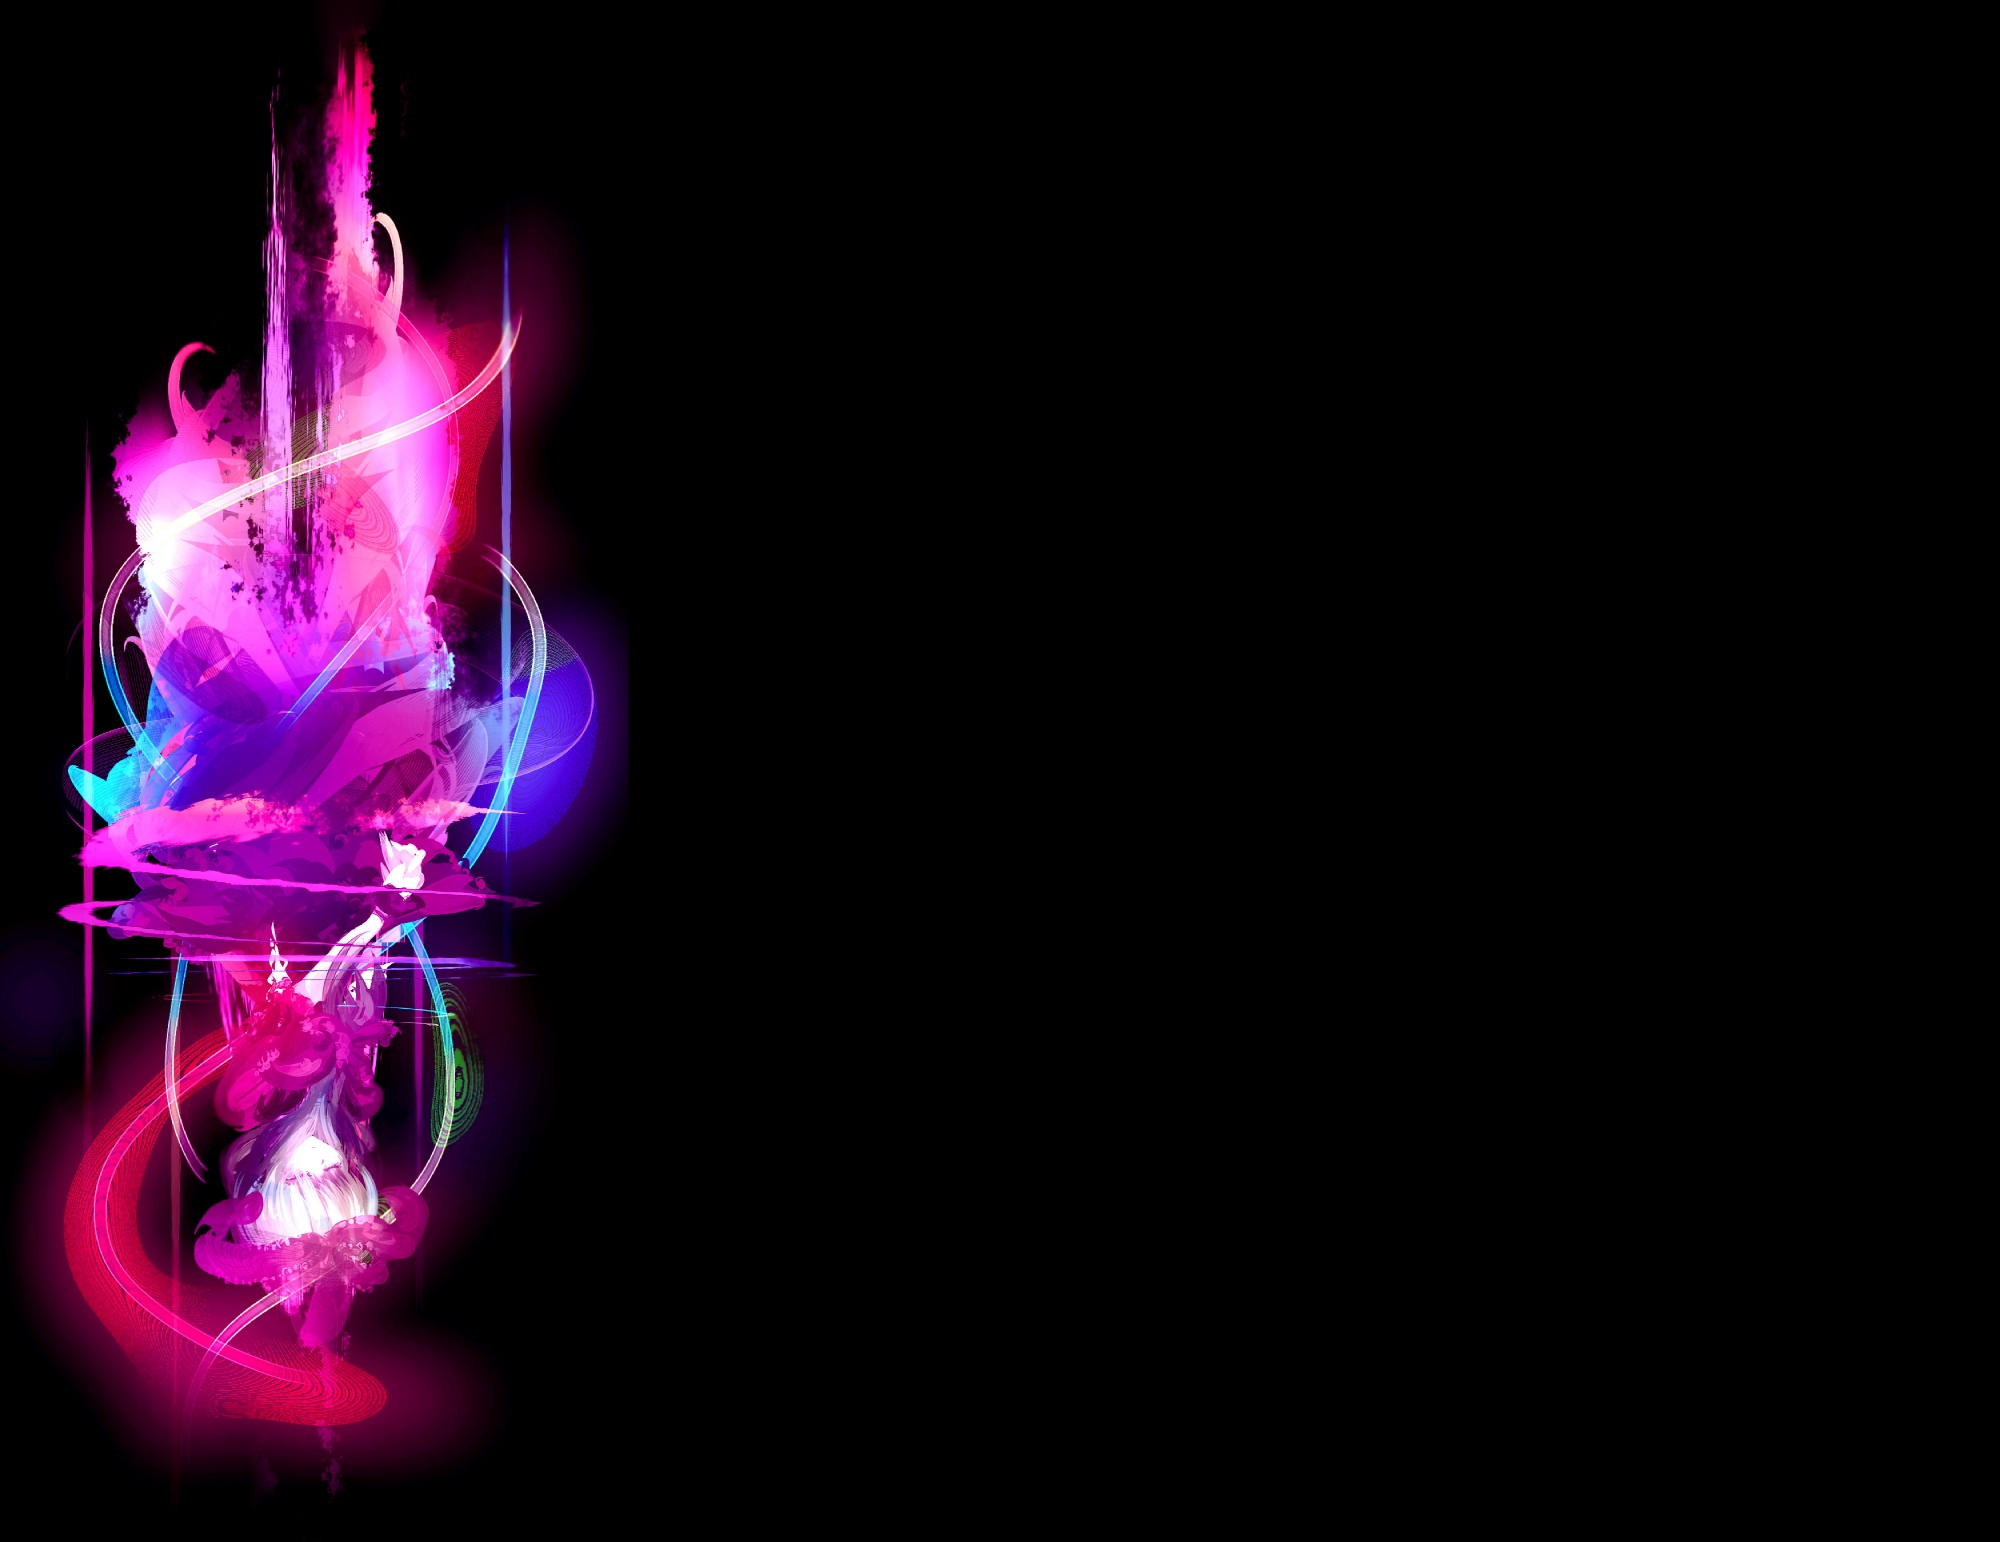 Neon Pink Wallpaper   HD Wallpapers and Pictures 2000x1542